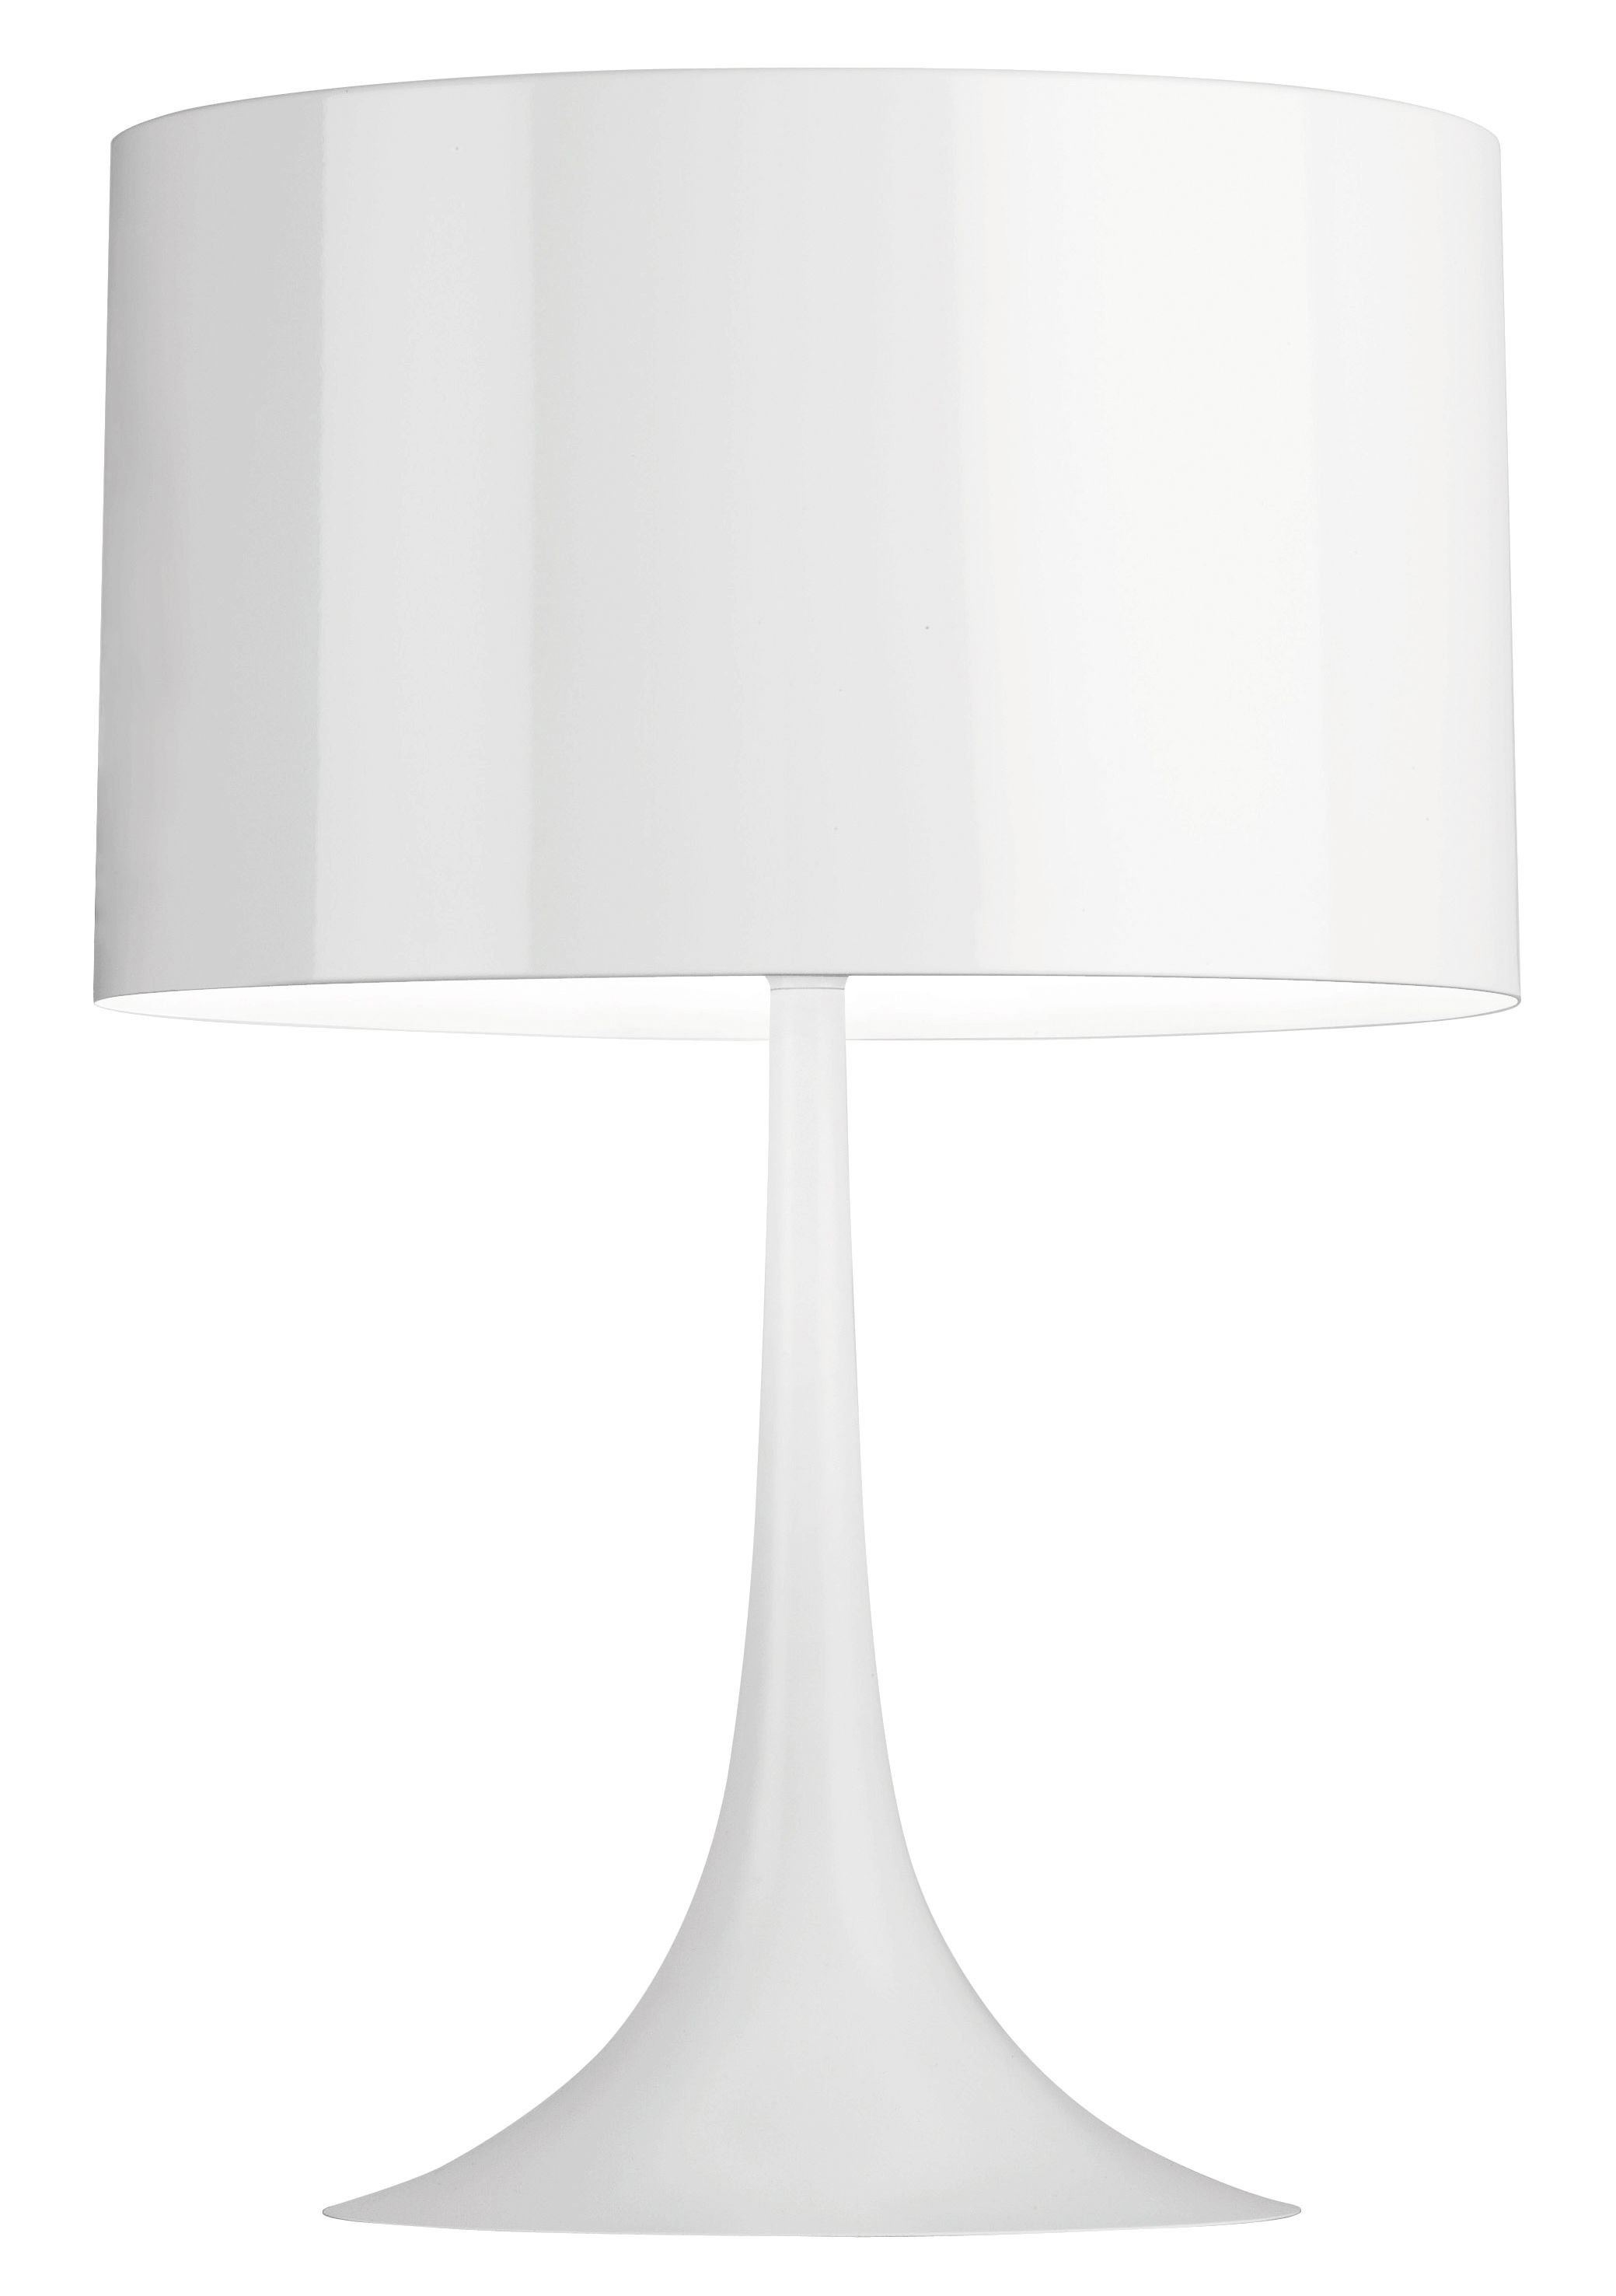 Luminaire - Lampes de table - Lampe de table Spun Light T1 H 57 cm - Flos - Blanc brillant - Métal